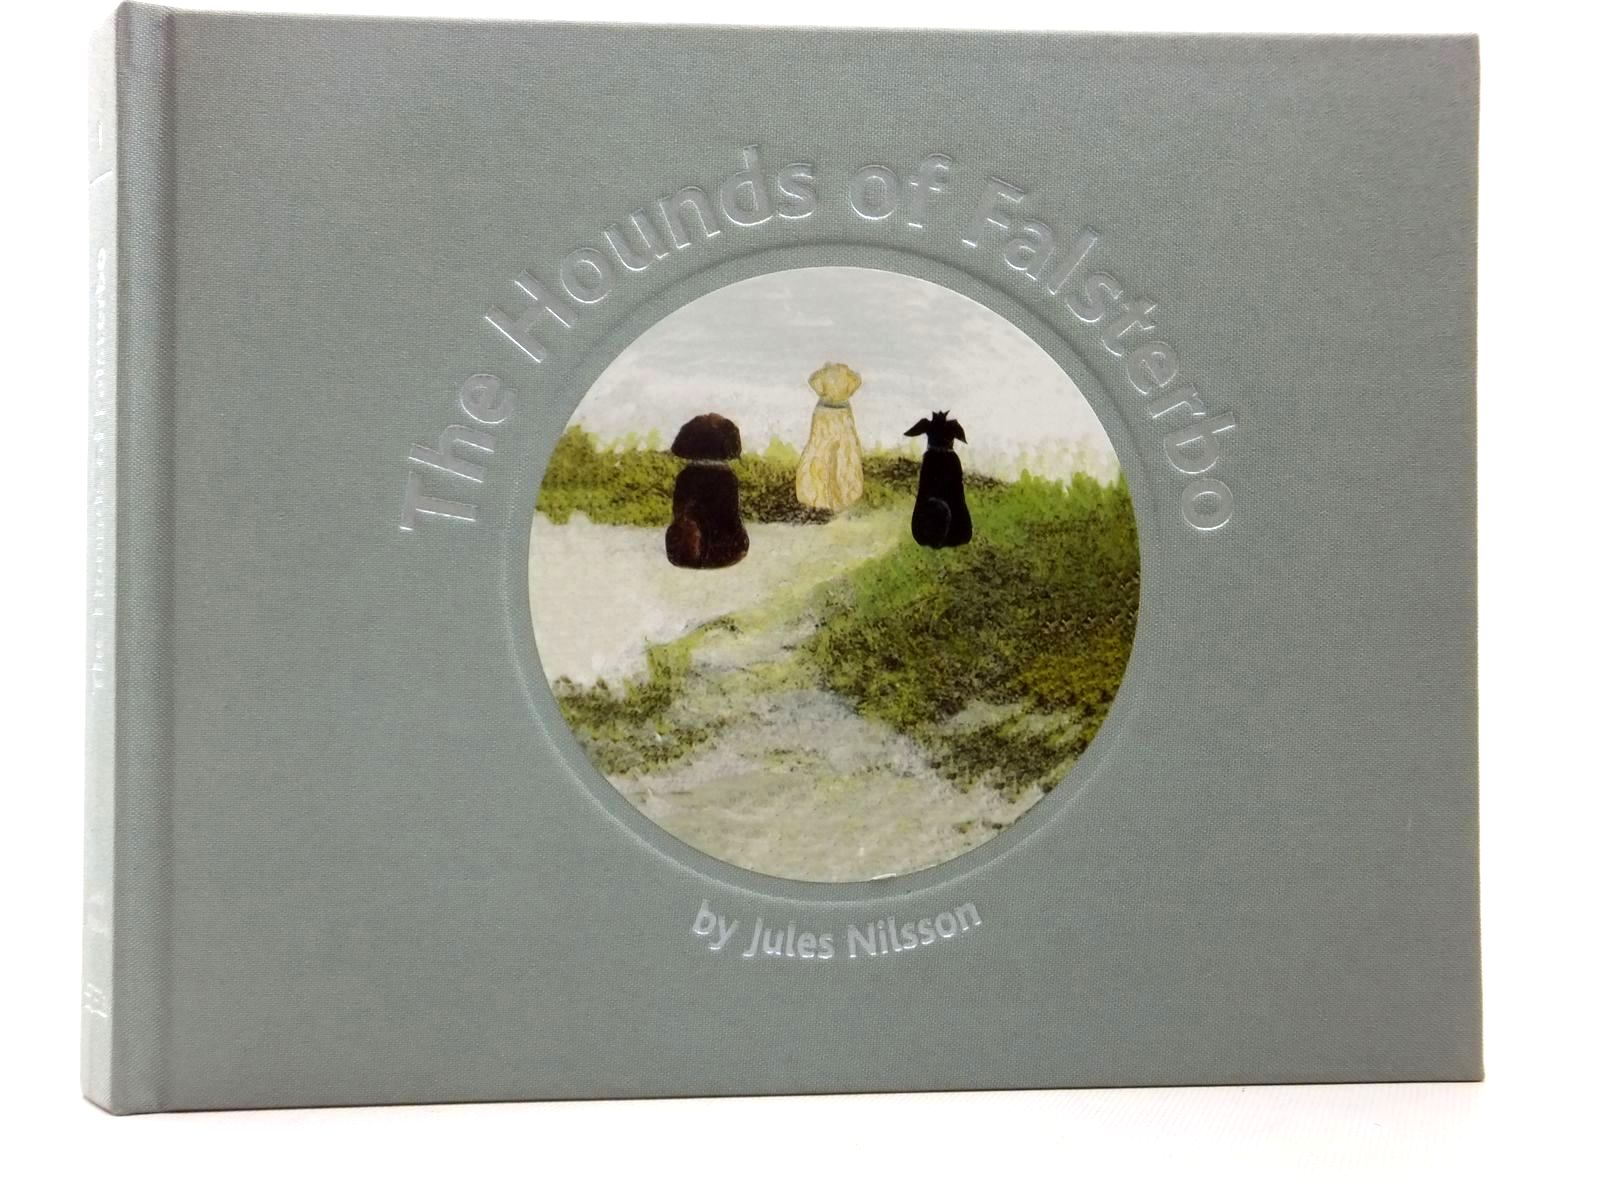 Photo of THE HOUNDS OF FALSTERBO written by Nilsson, Jules illustrated by Nilsson, Jules published by Vind & Vag (STOCK CODE: 1814776)  for sale by Stella & Rose's Books